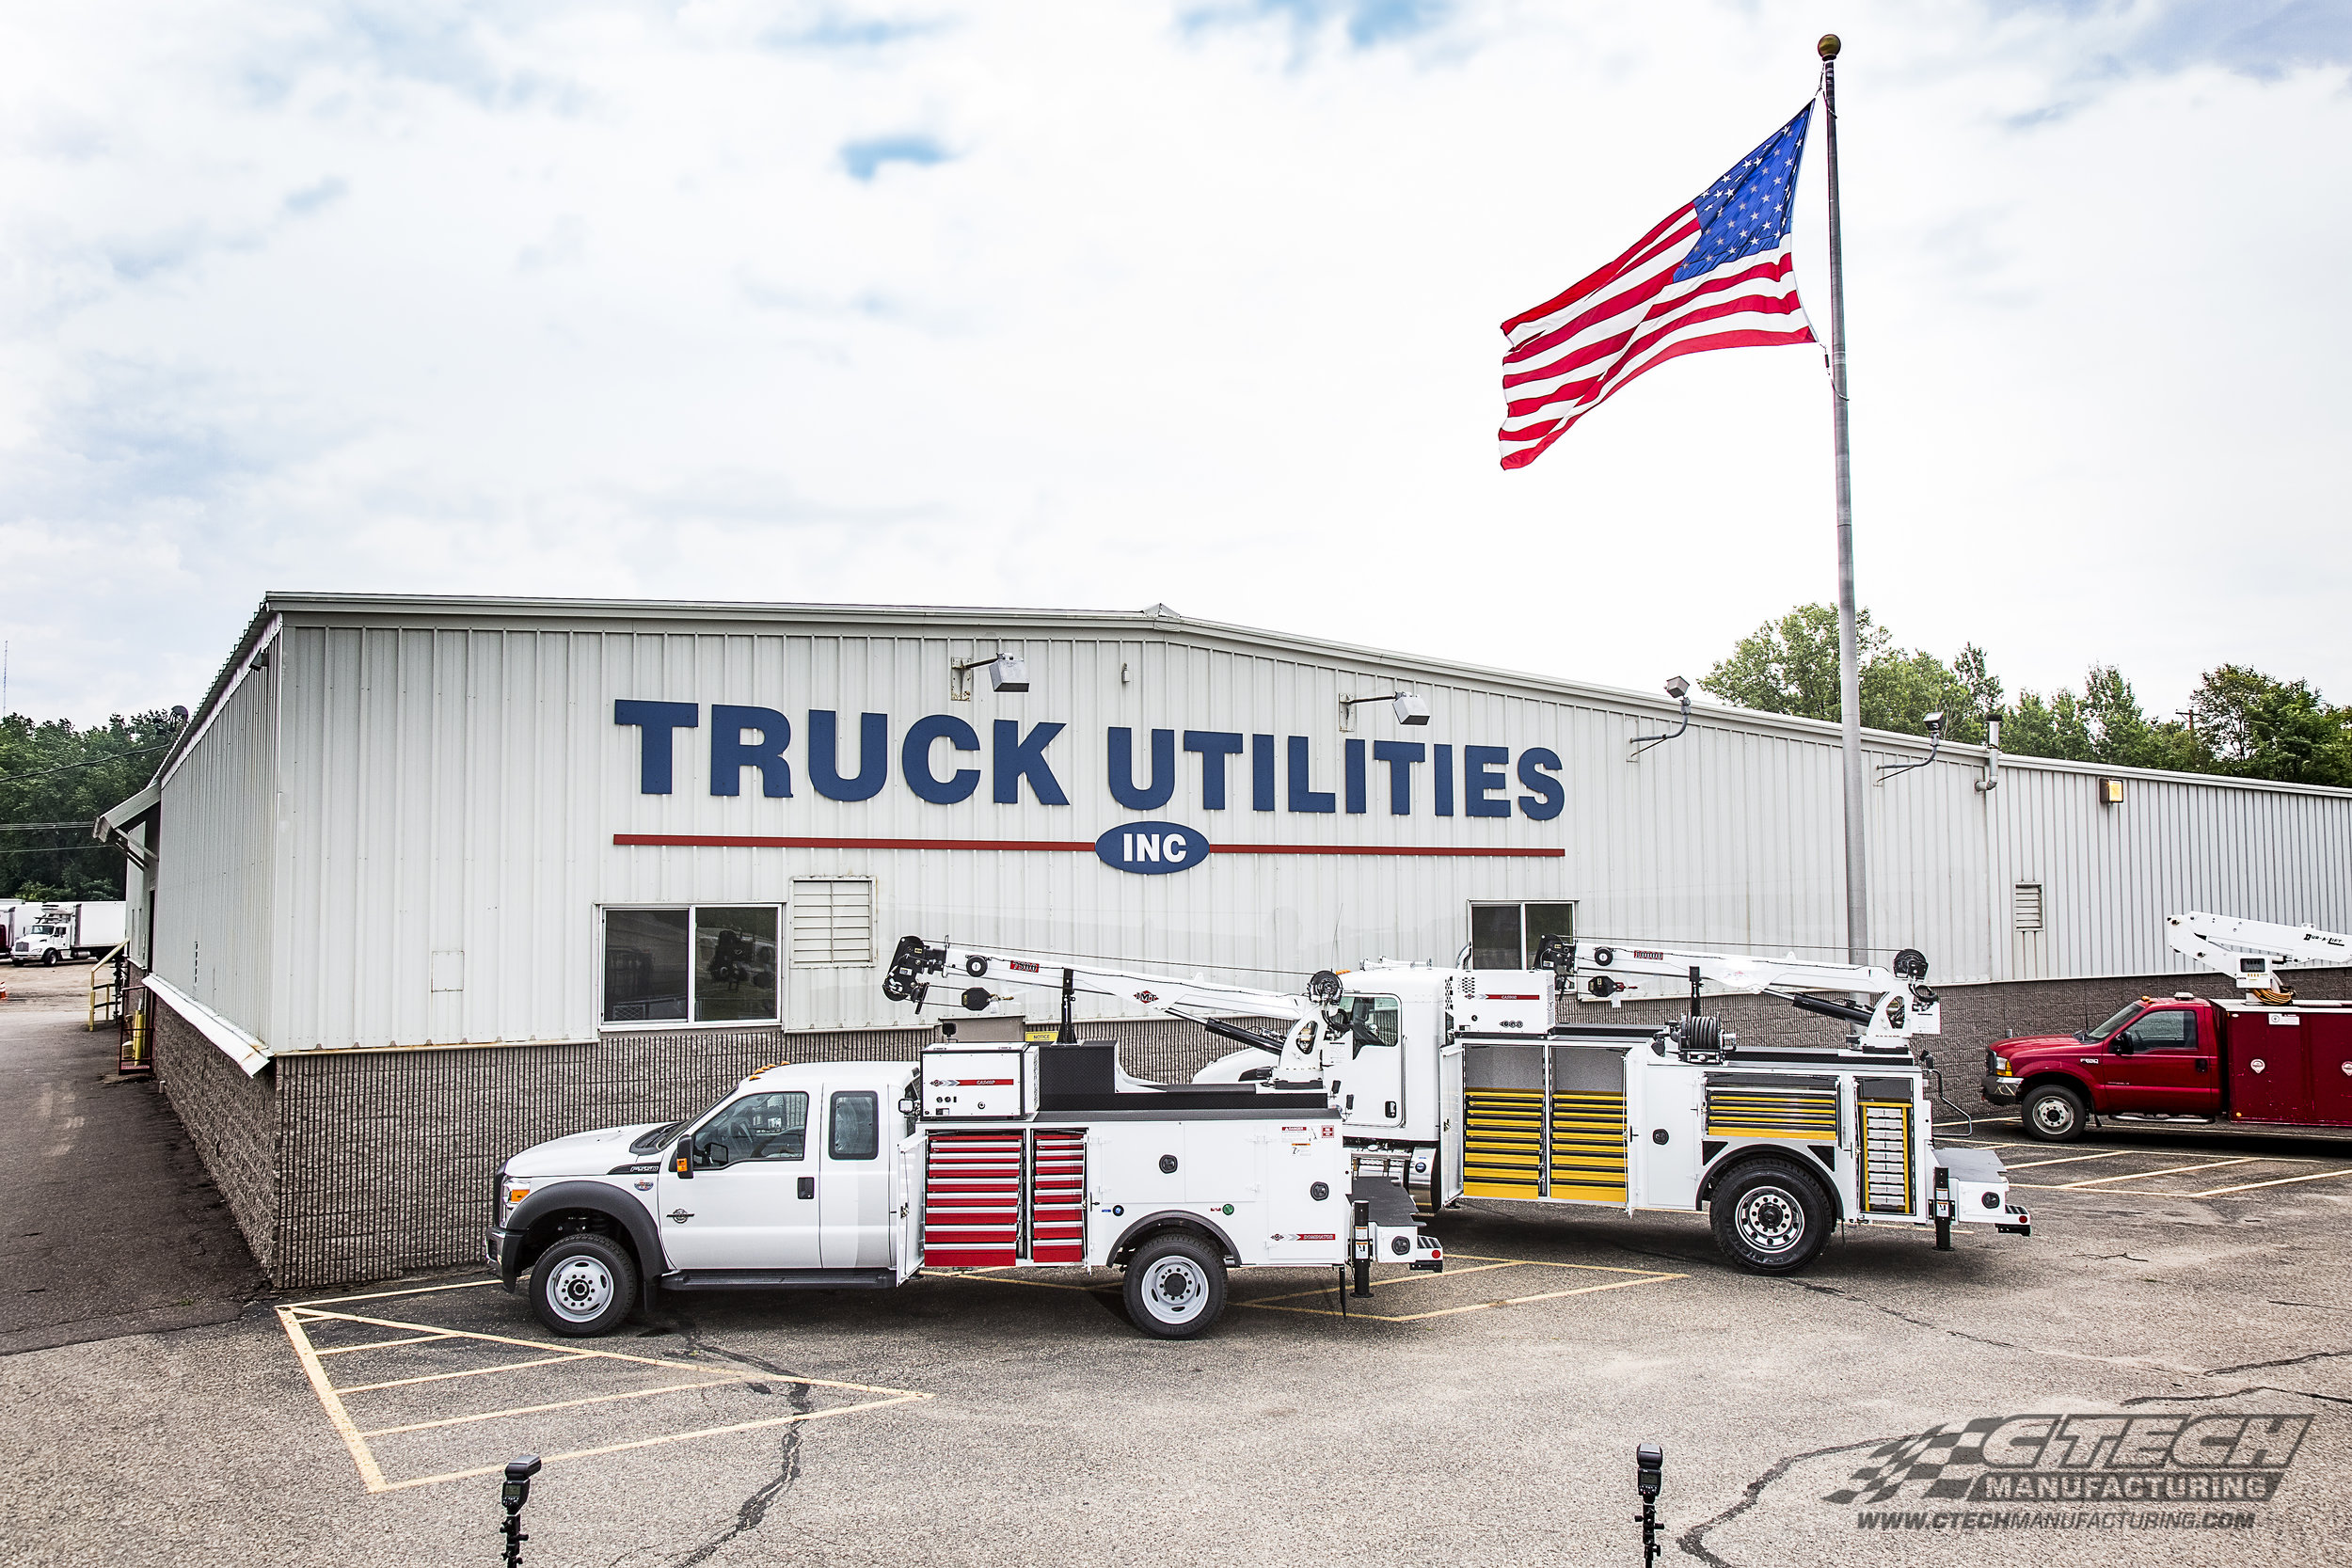 """Ctech is proud to have a huge network of Tool Drawer dealers around the country to assist in choosing and installing CTech products! Check out our online 'Find a Dealer"""" option to find one near you!"""